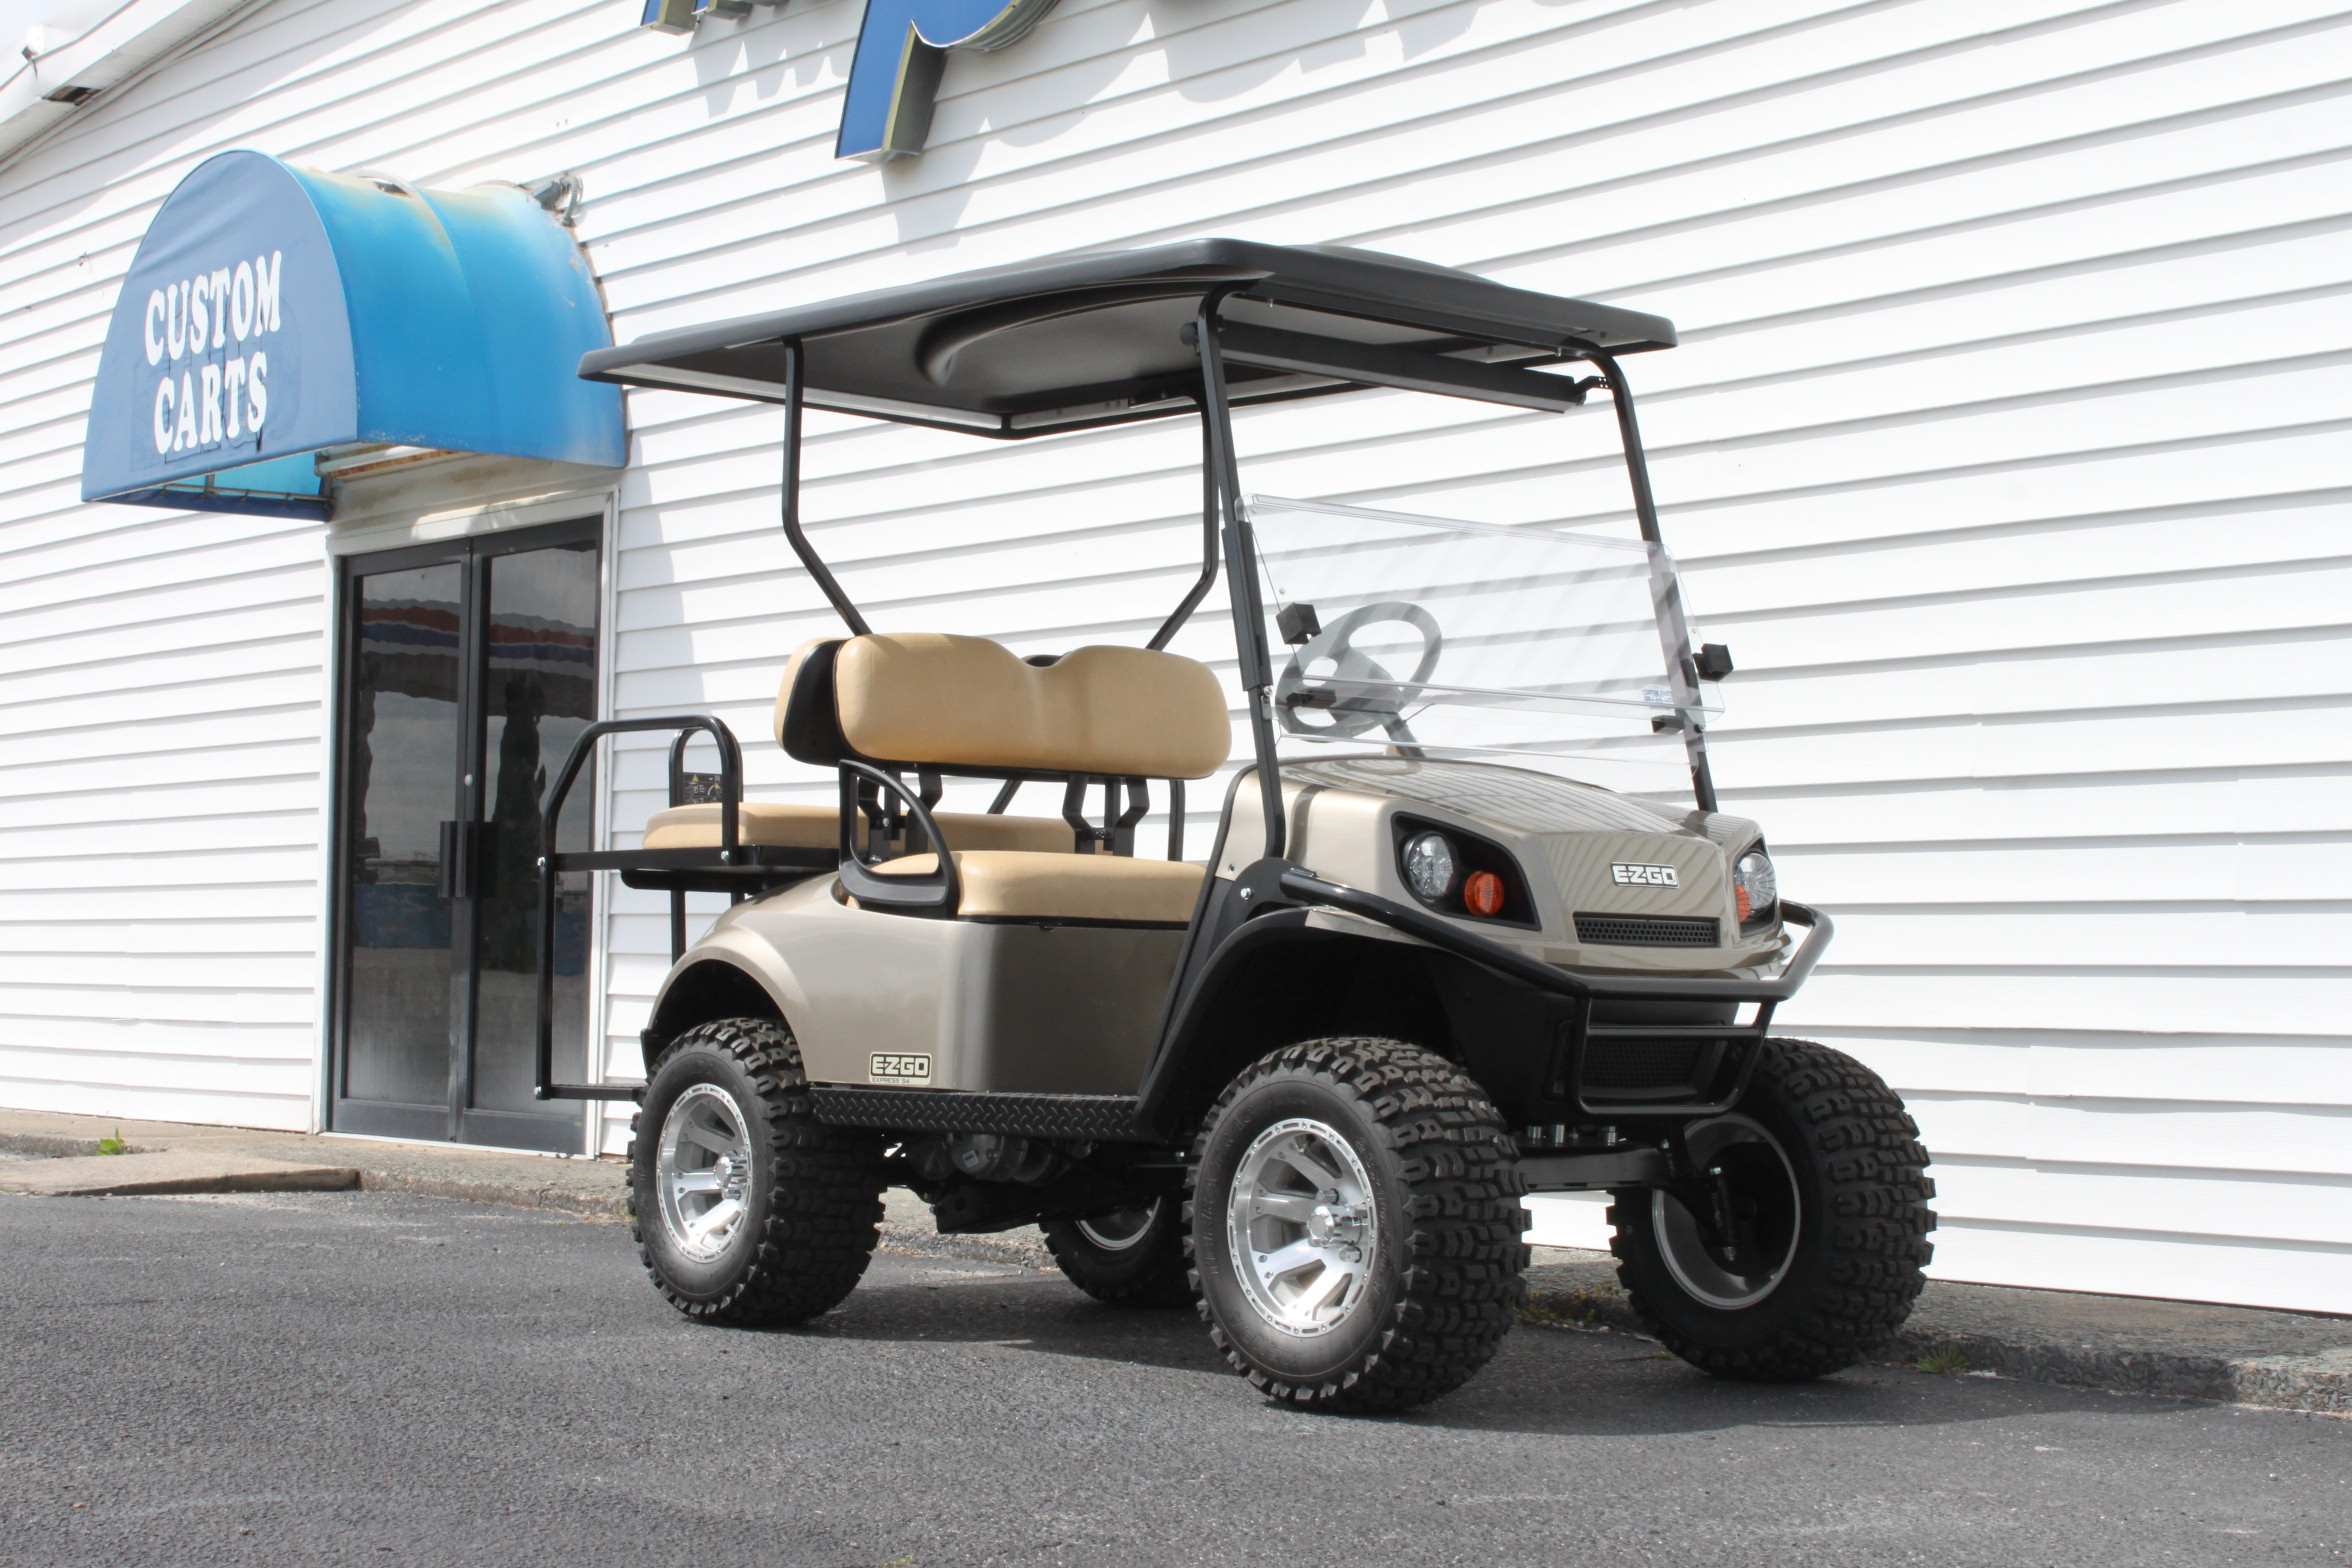 STOCK# 3389222, 2019 E-Z-GO S4 EXPRESS GAS GOLF CART